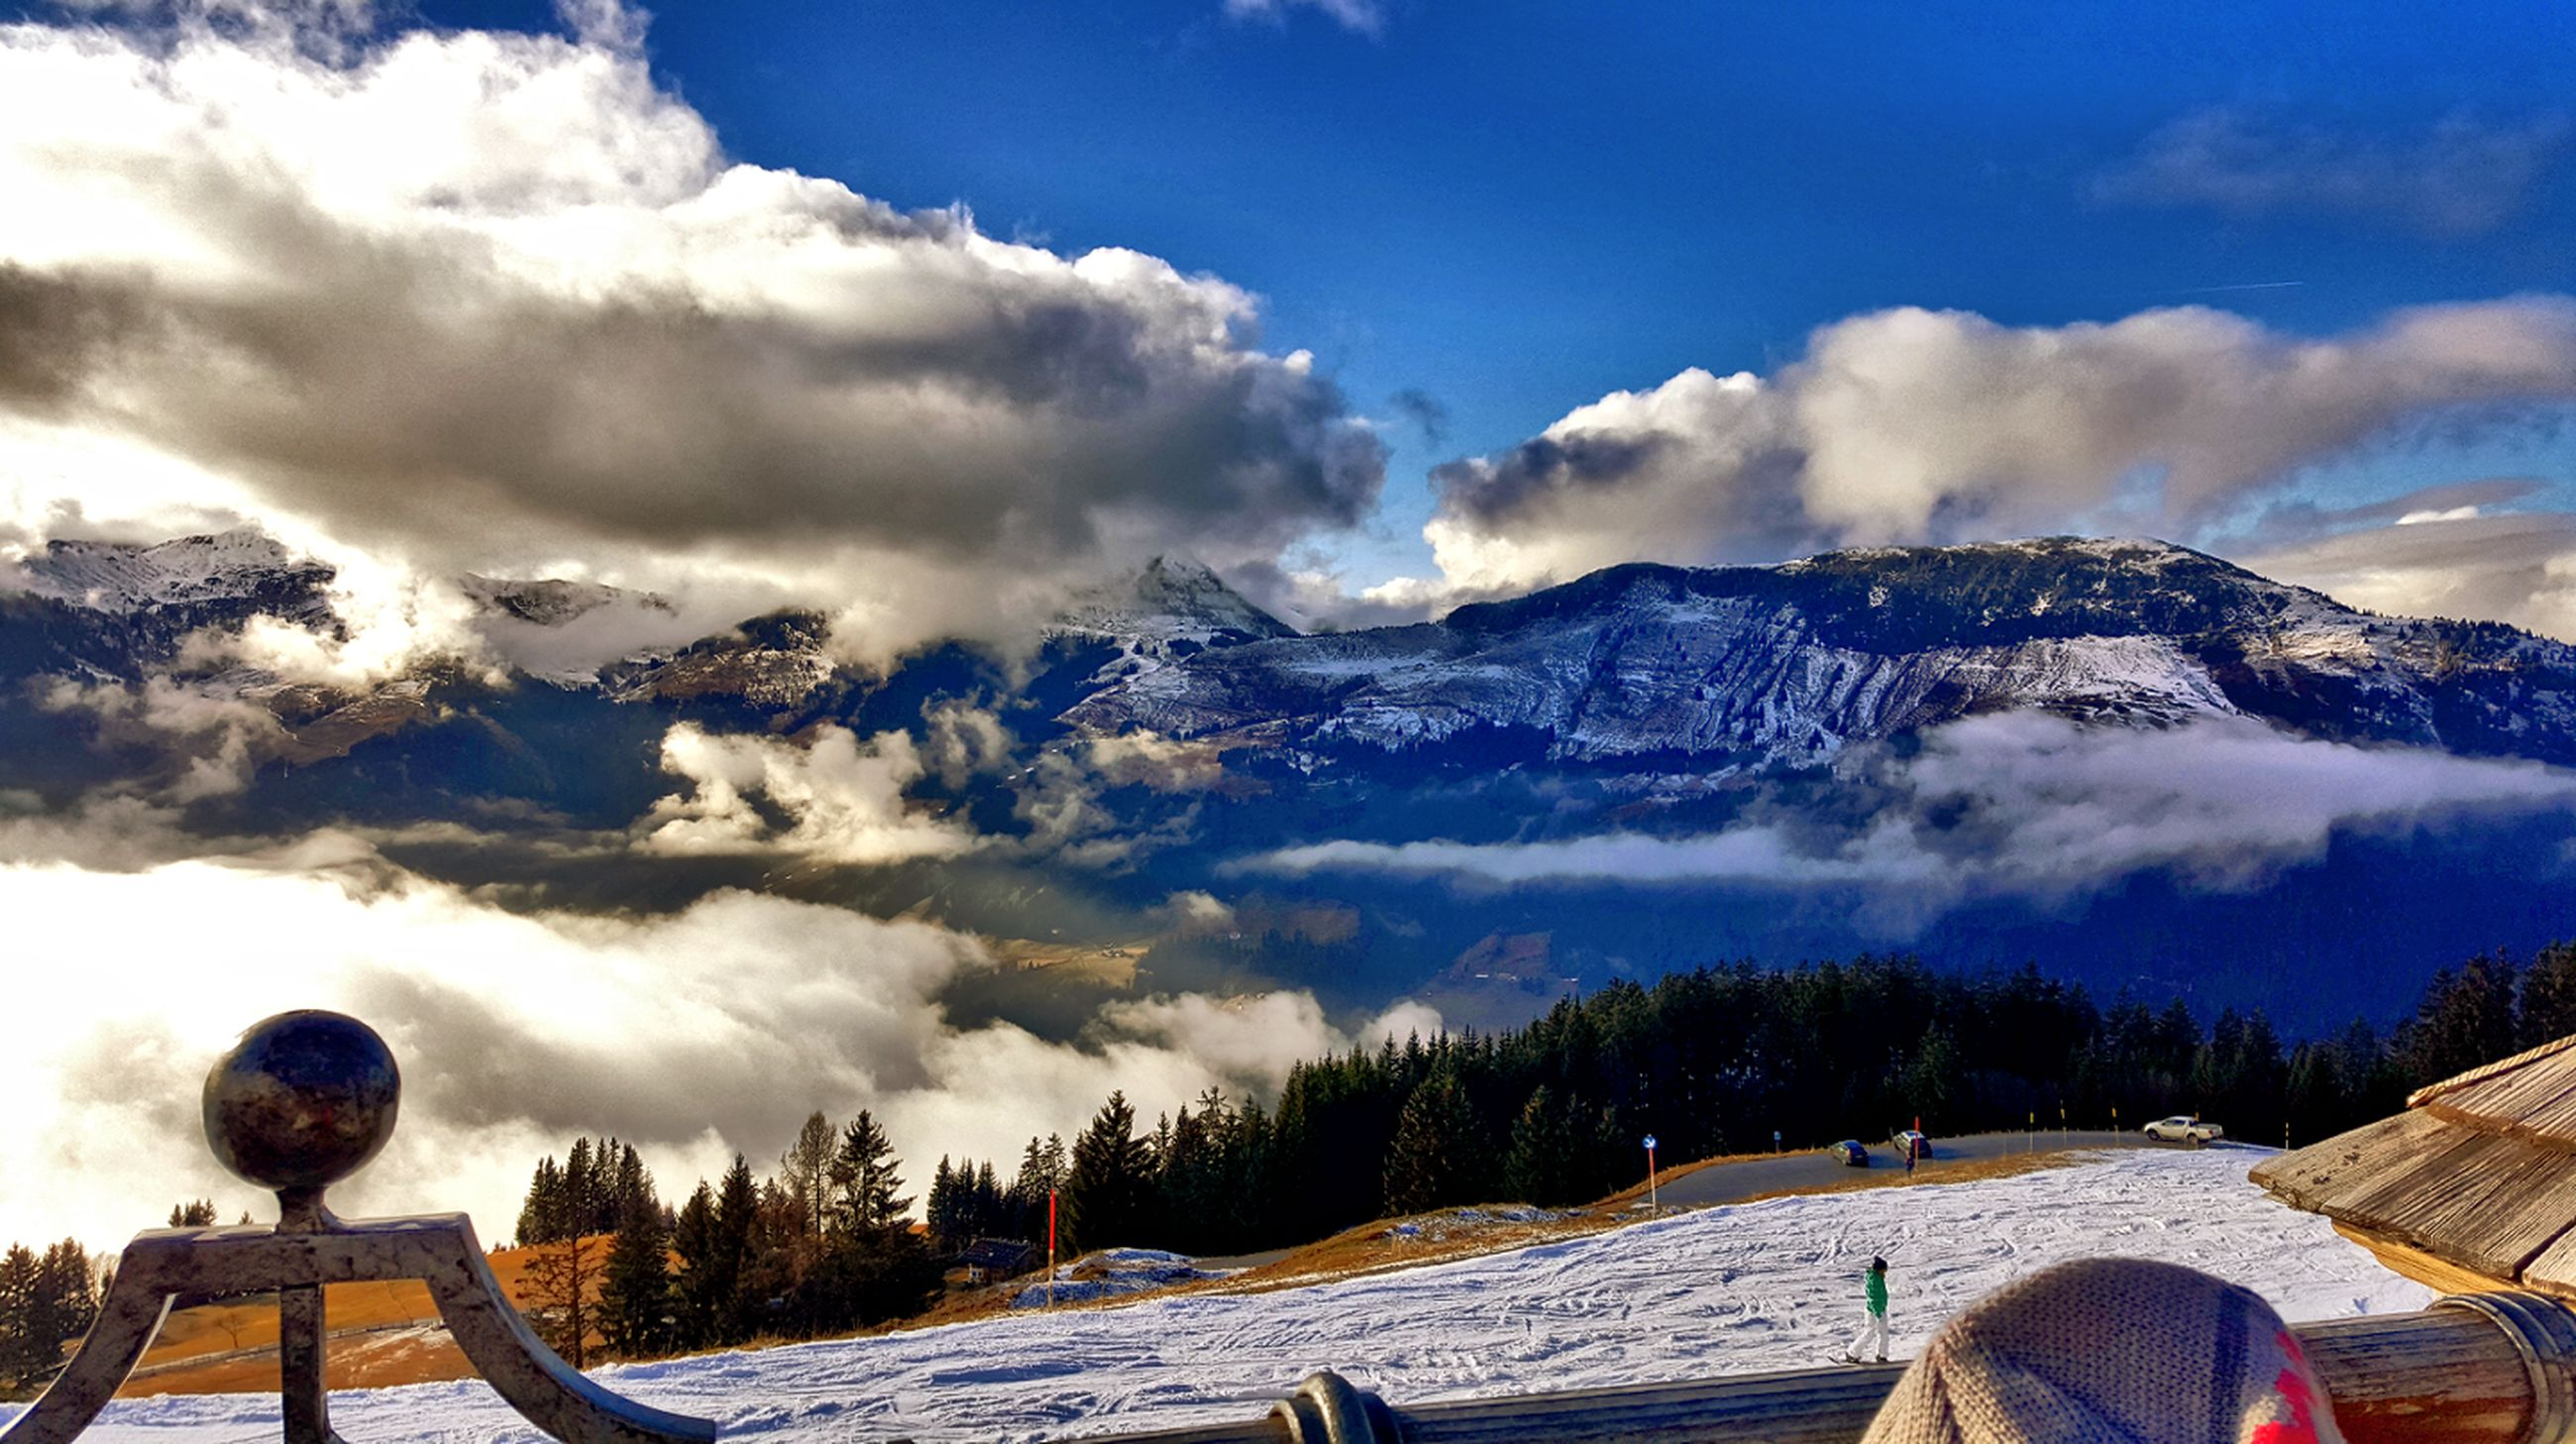 mountain, sky, cloud - sky, mountain range, snow, winter, weather, scenics, cold temperature, cloudy, beauty in nature, tranquil scene, tranquility, cloud, nature, season, landscape, snowcapped mountain, day, outdoors